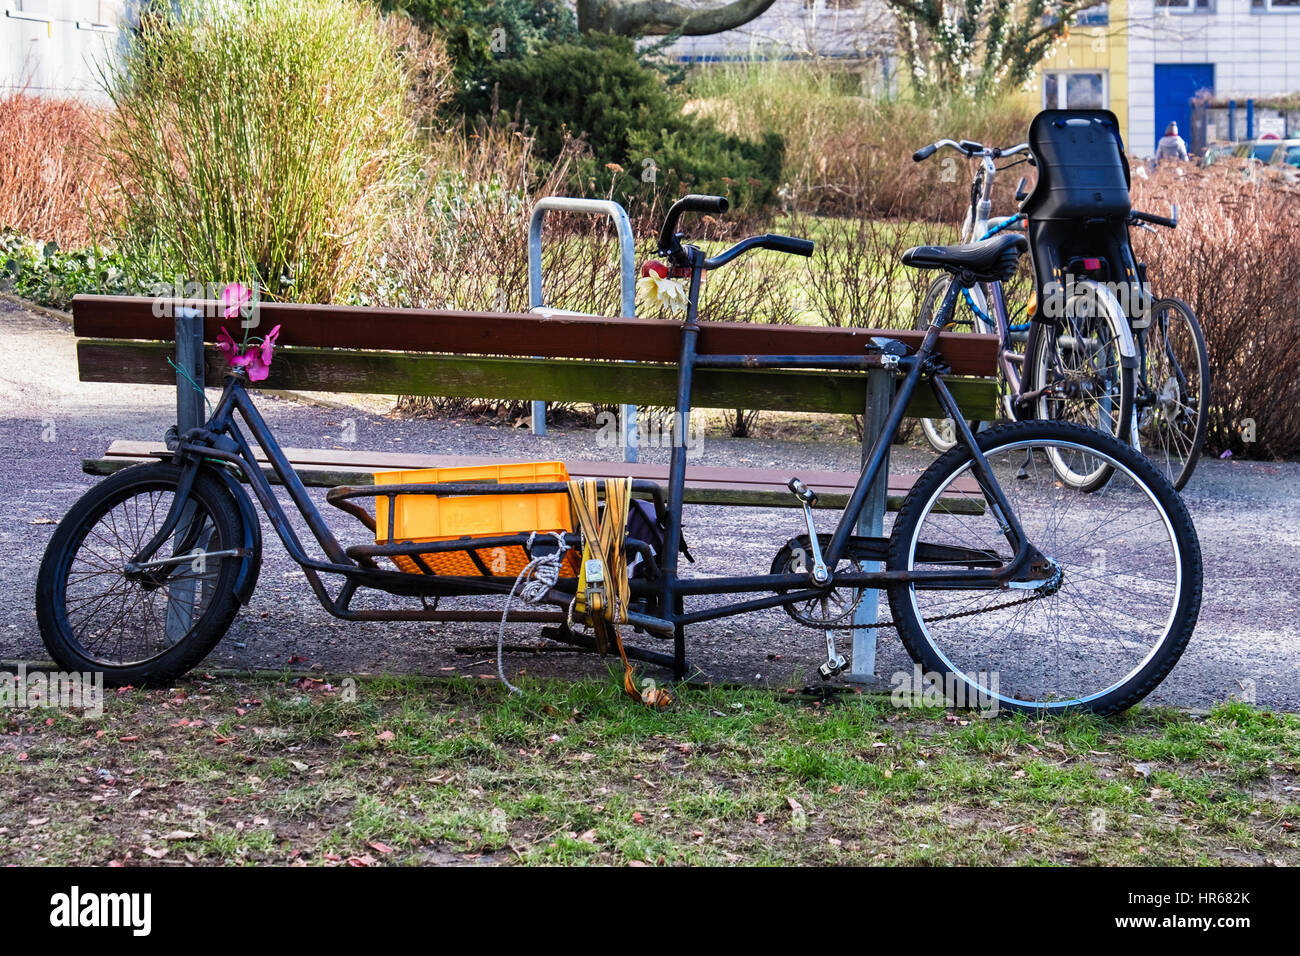 Elongated modified bicycle with basket for carrying goods